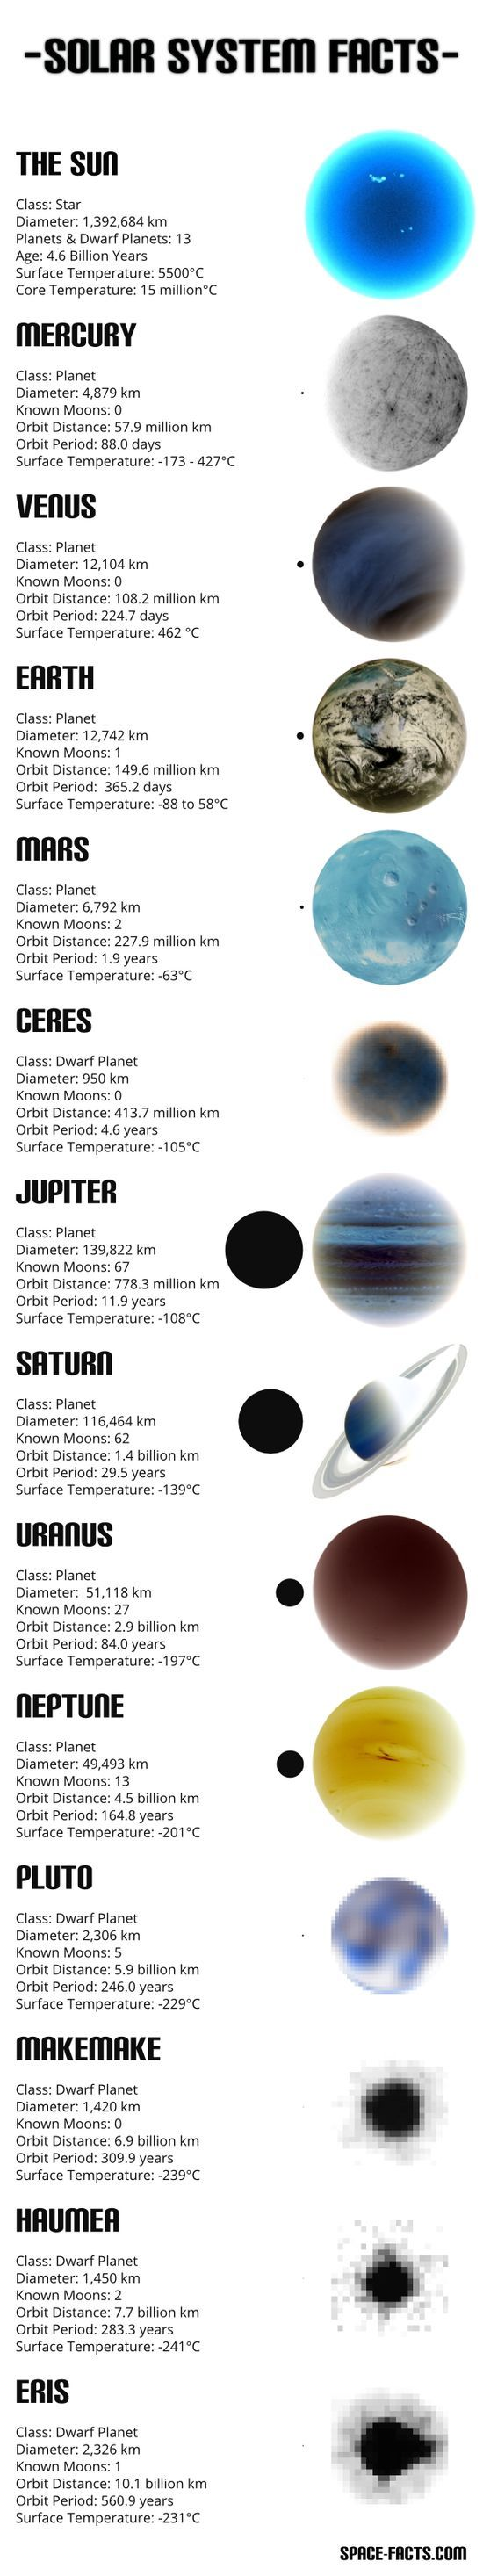 A great chart with facts about each planet. Would be great to hang in a classroom or even have students write down. A very informative chart.